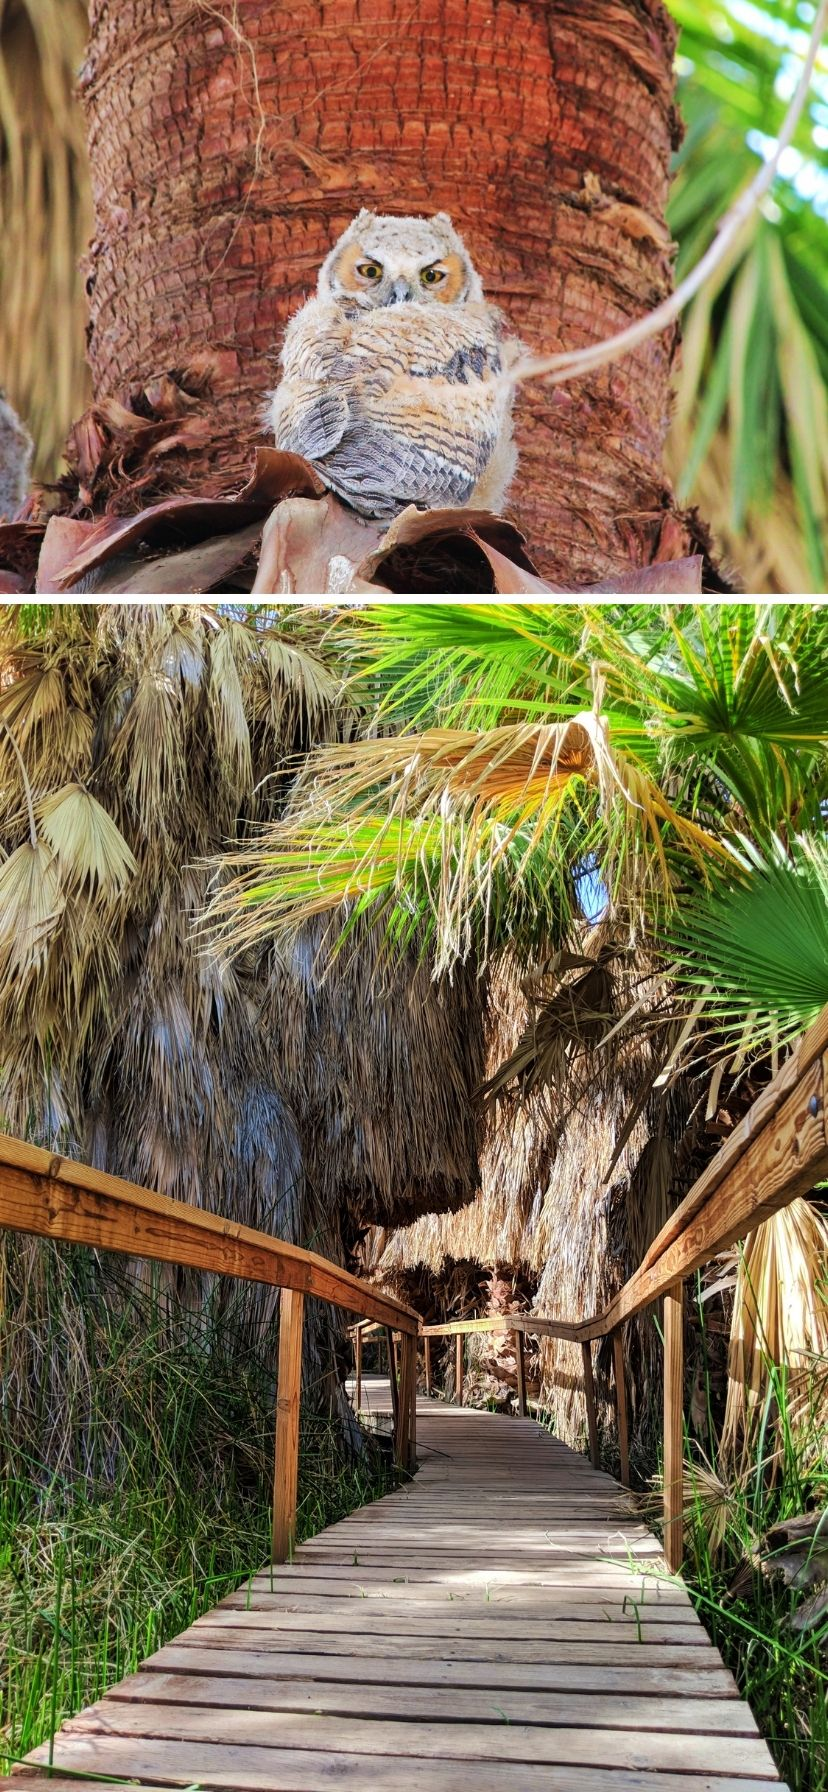 Owl in palm tree above oasis boardwalk in Coachella Valley Preserve, Palm Springs